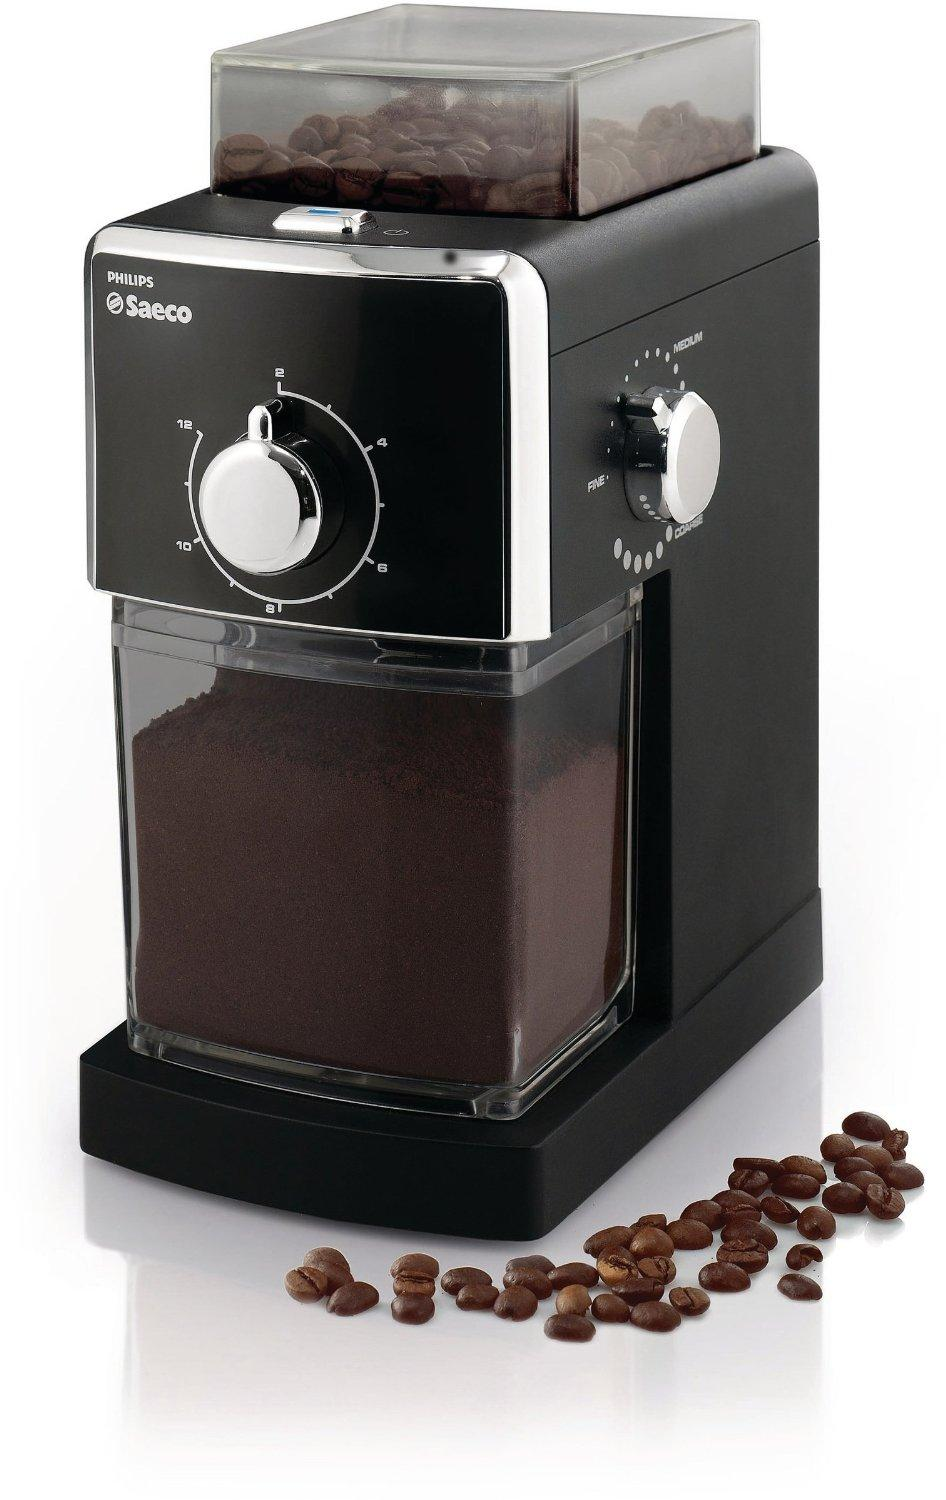 Philips Saeco Burr Coffee Grinder